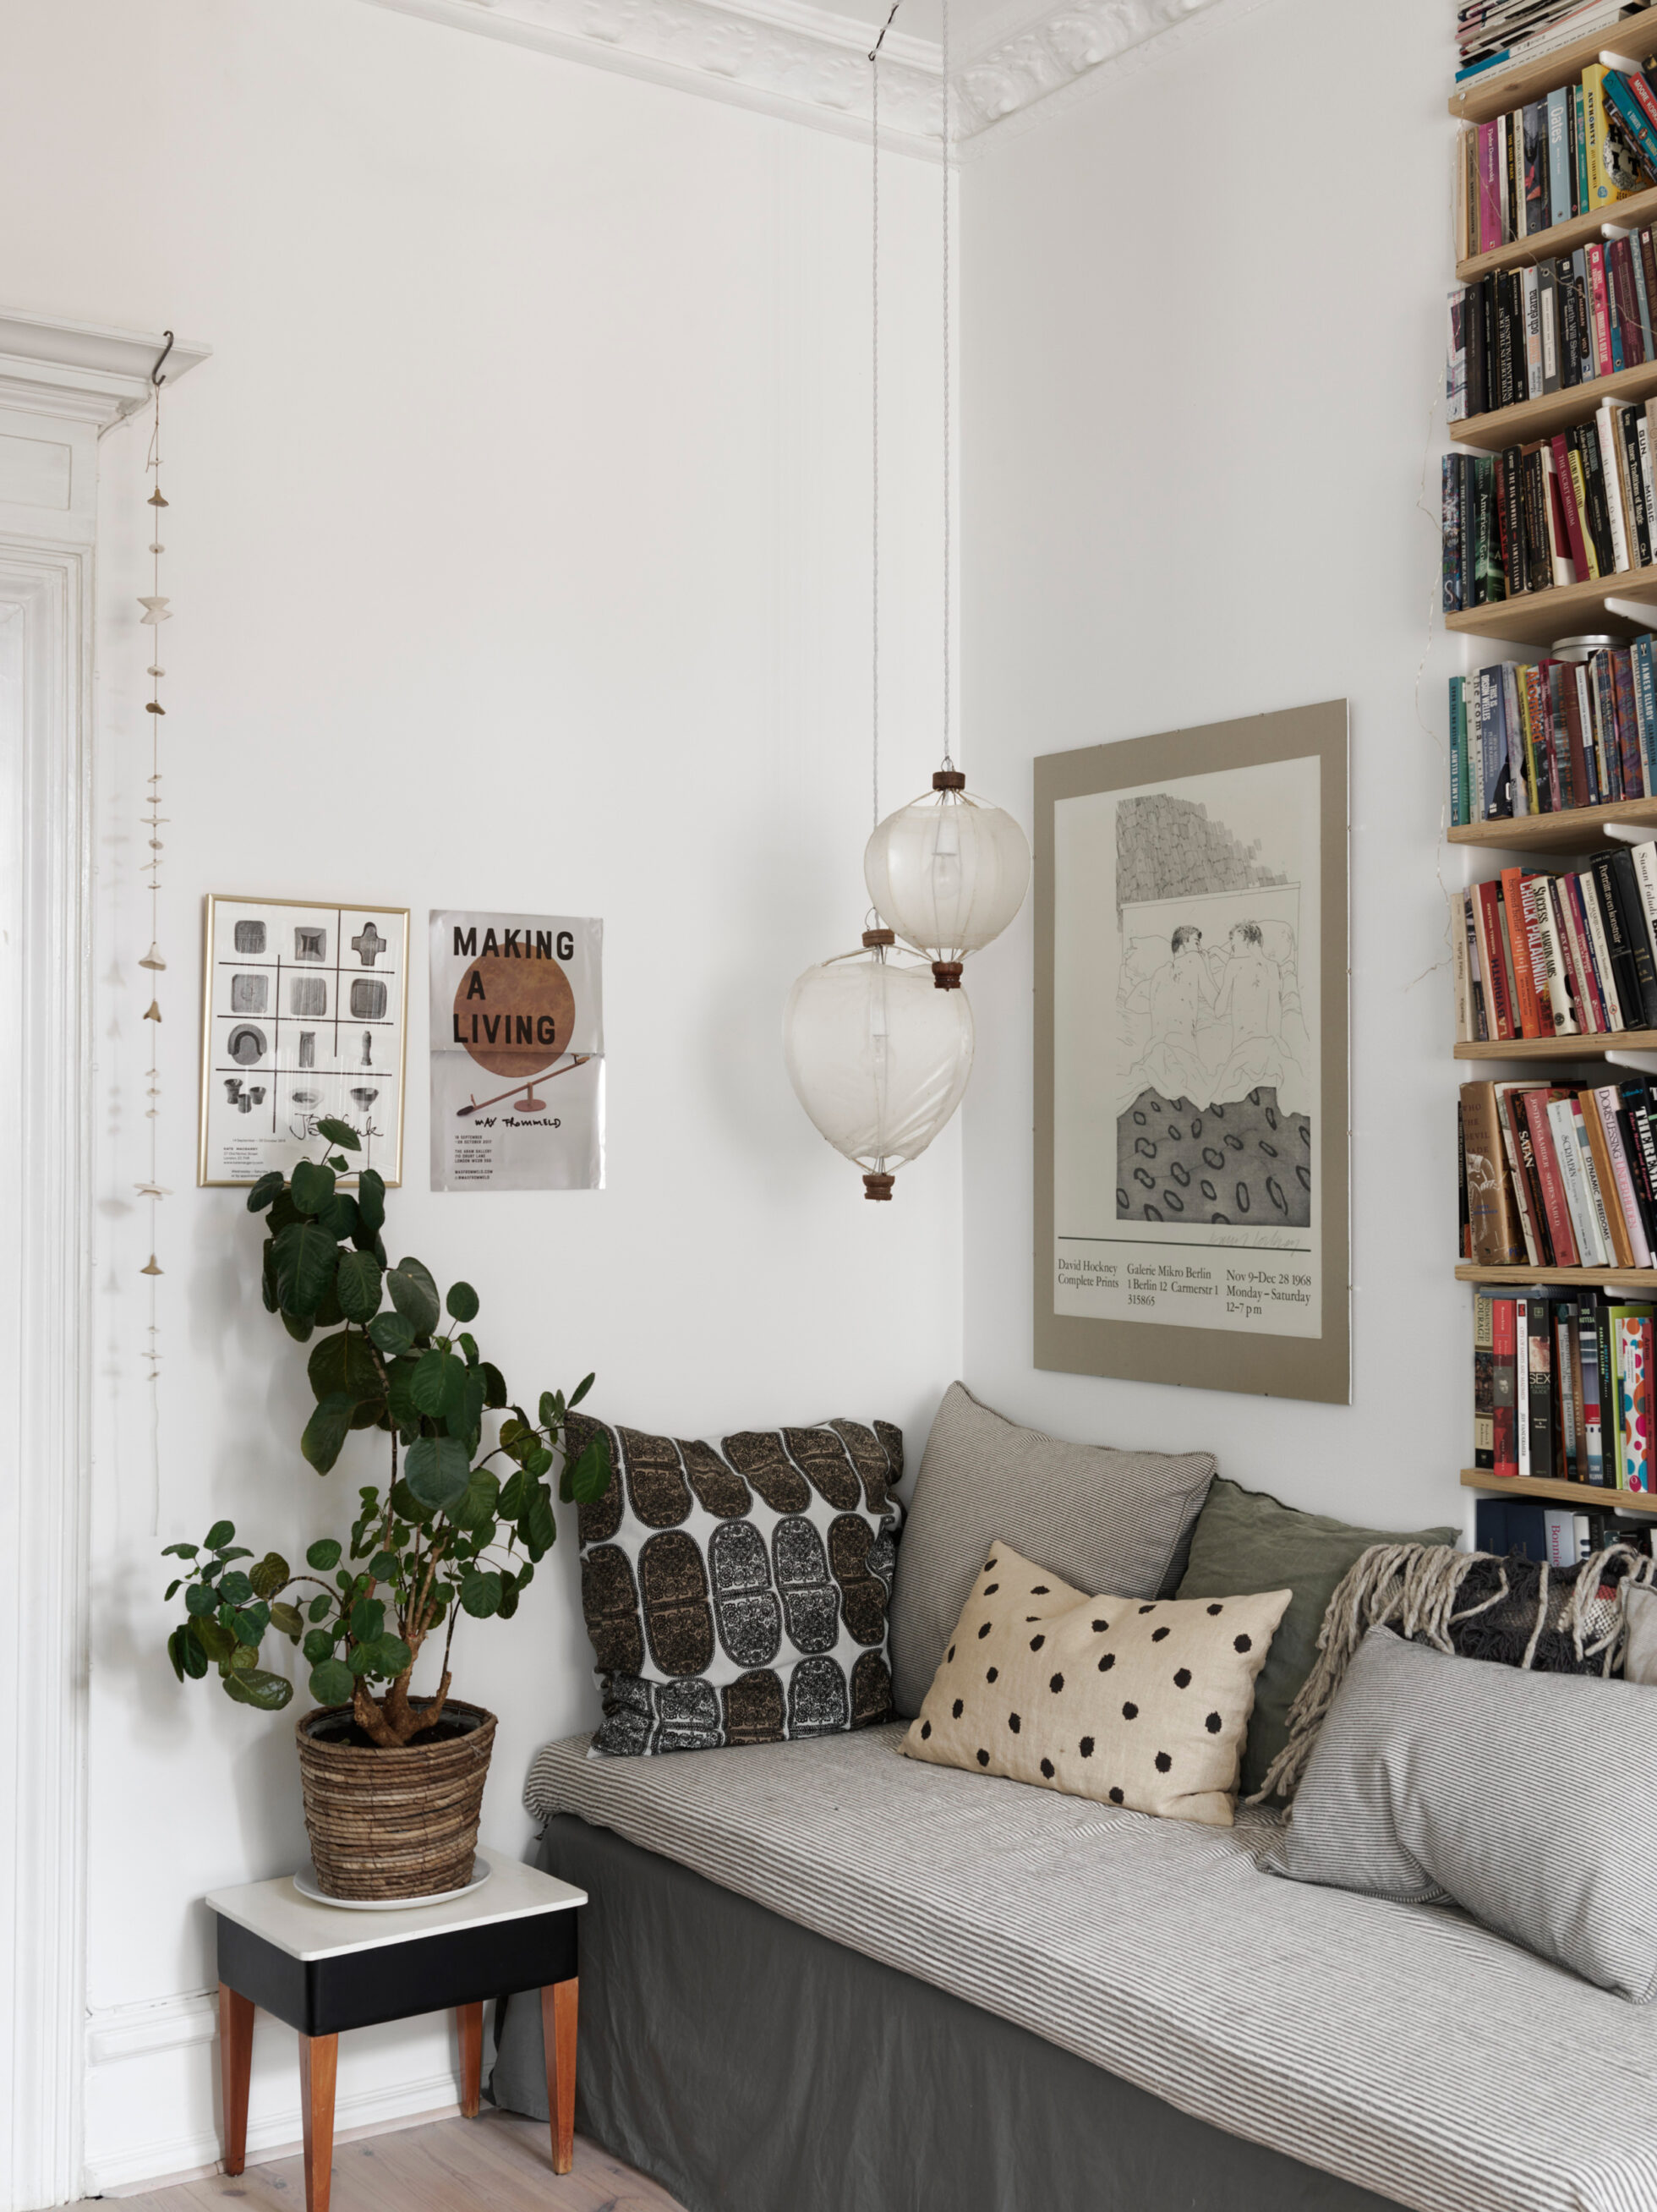 The Nordroom - Soft Neutral Tones in Nina Persson's Malmö Home